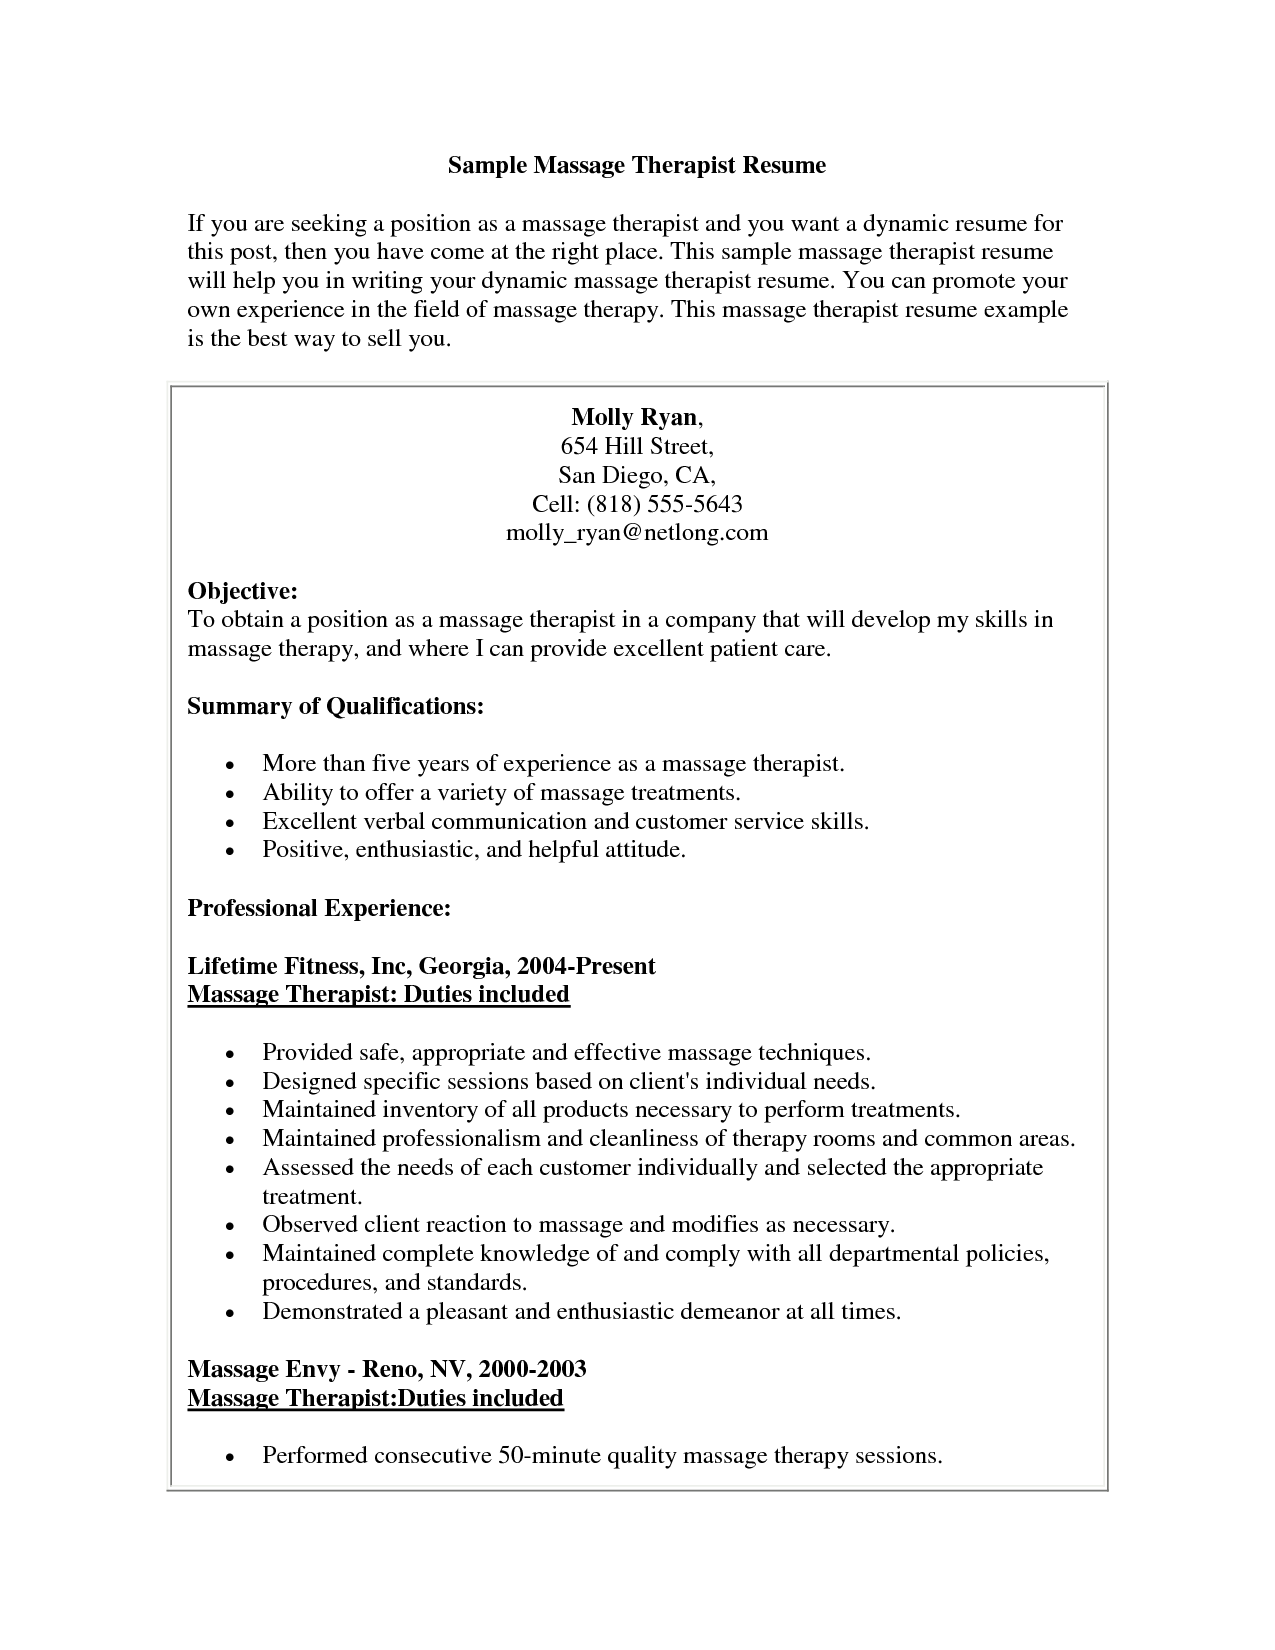 Job Objective For Resume Massage Therapist Resume Sample Massage Therapist Resume Sample